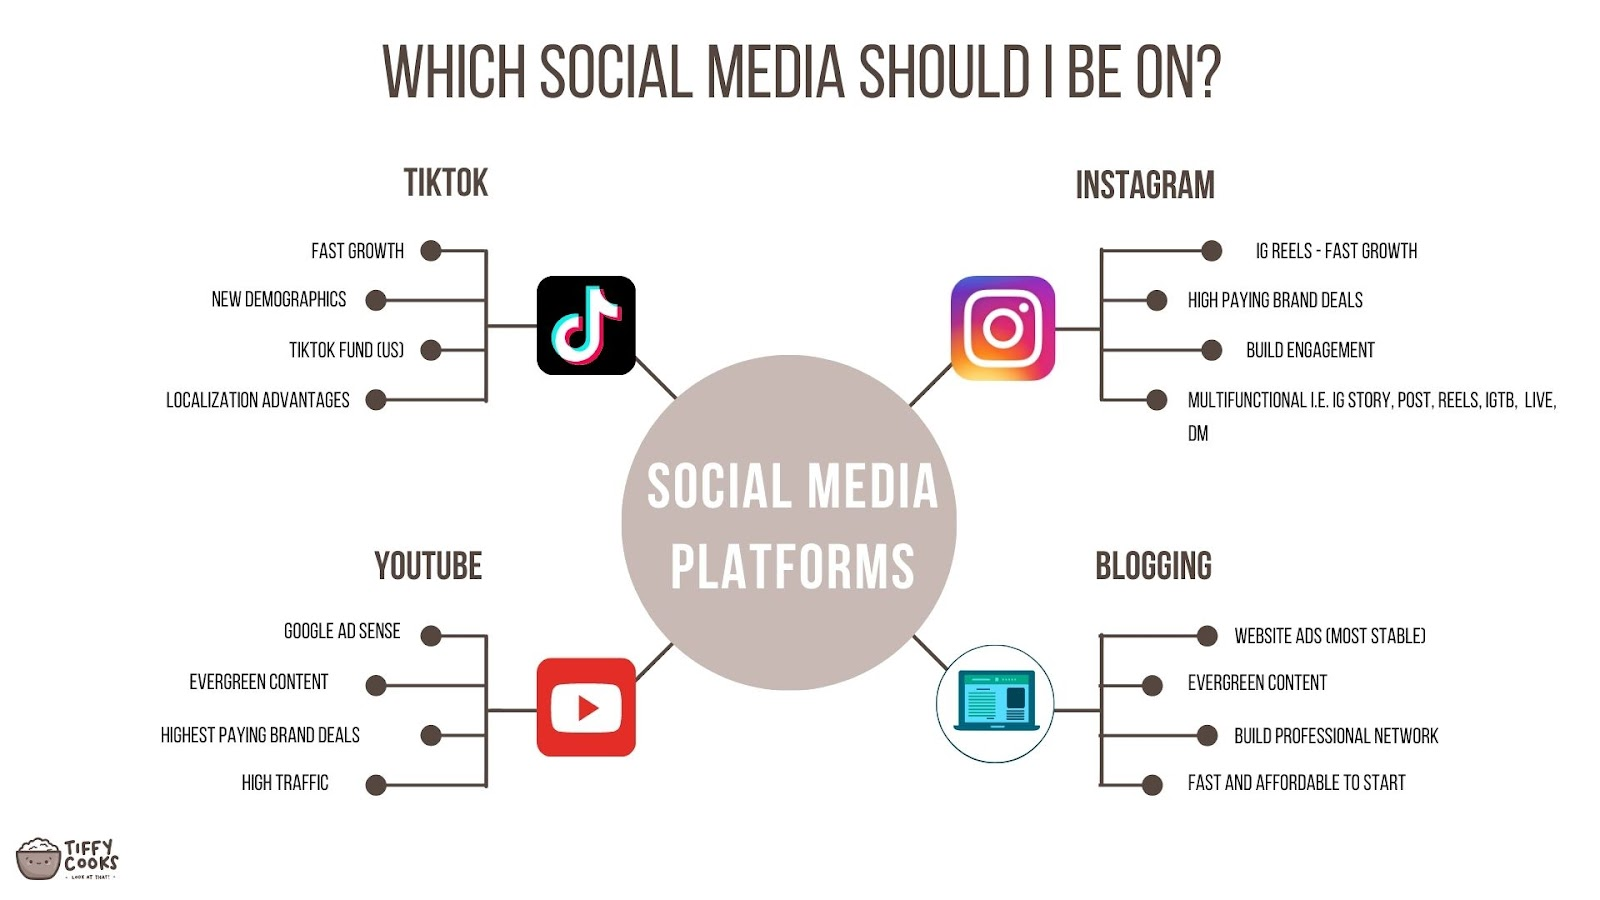 What social media should I be on?